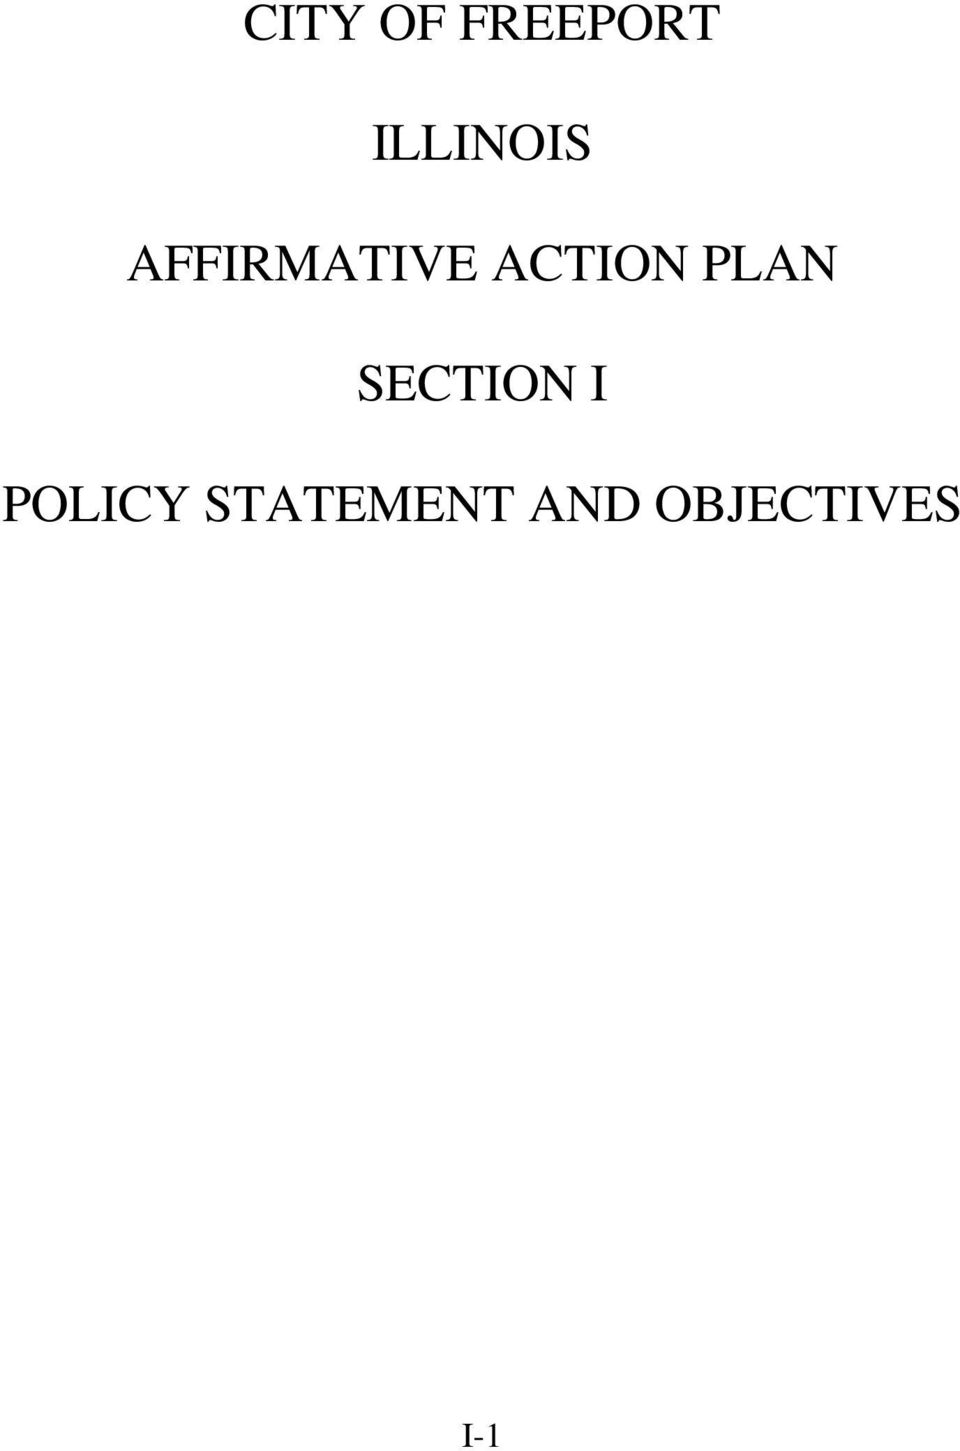 ACTION PLAN SECTION I